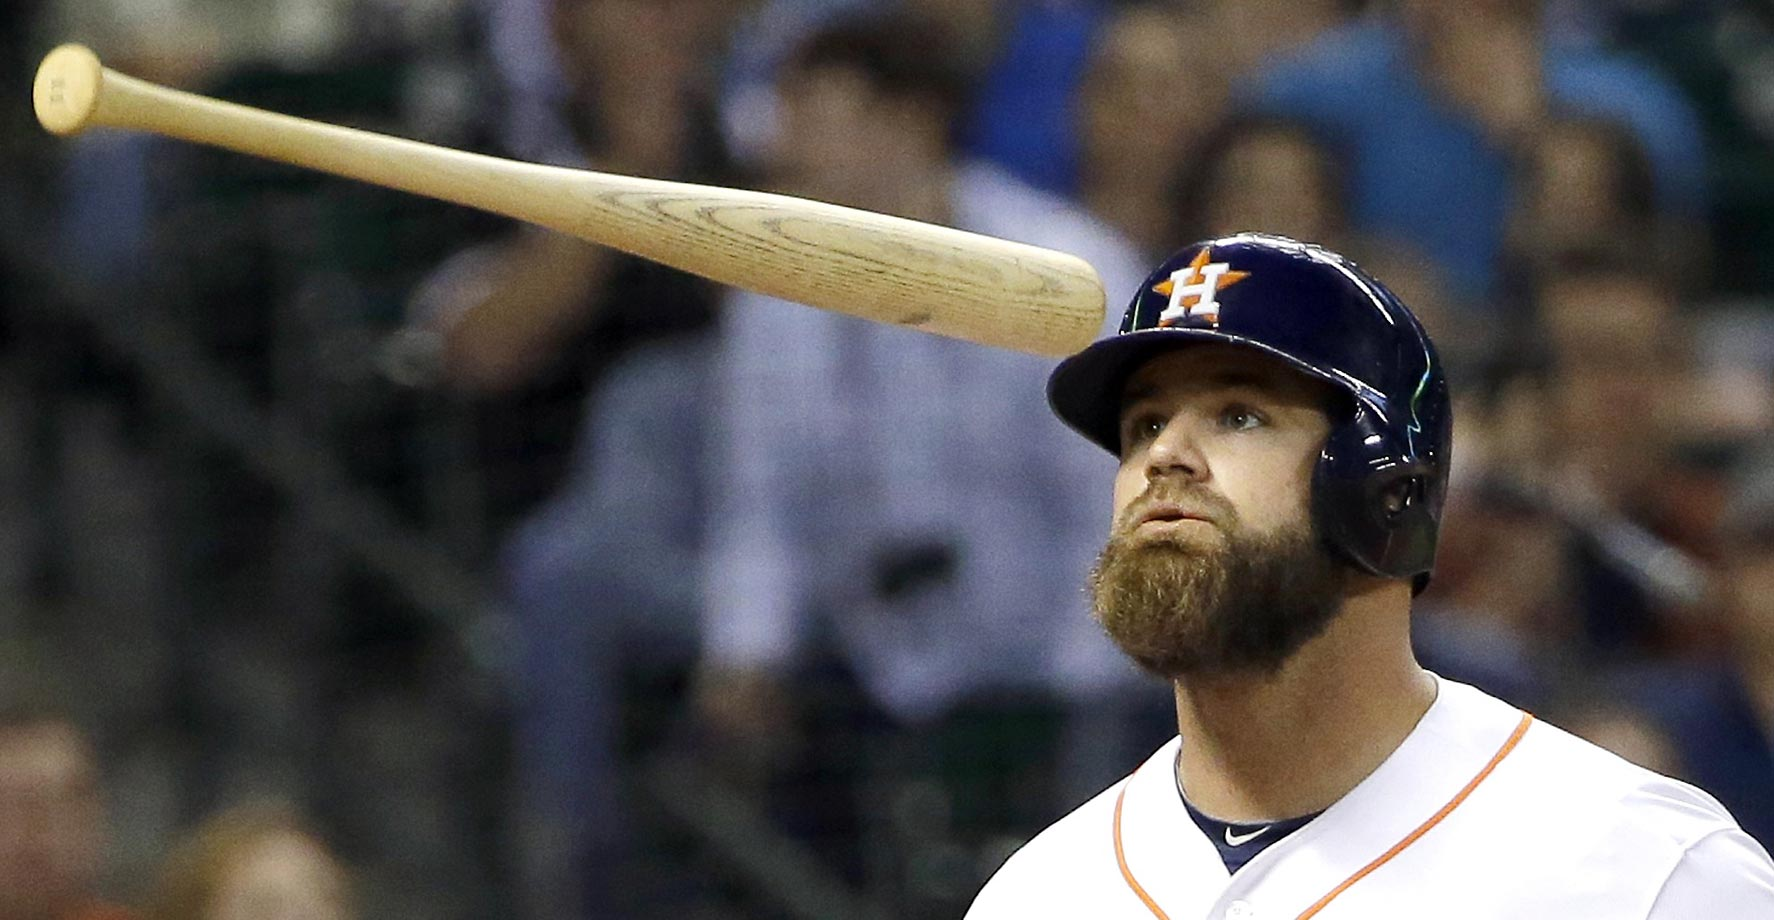 Evan Gattis of the Houston Astros tosses his bat after striking out against the San Francisco Giants.